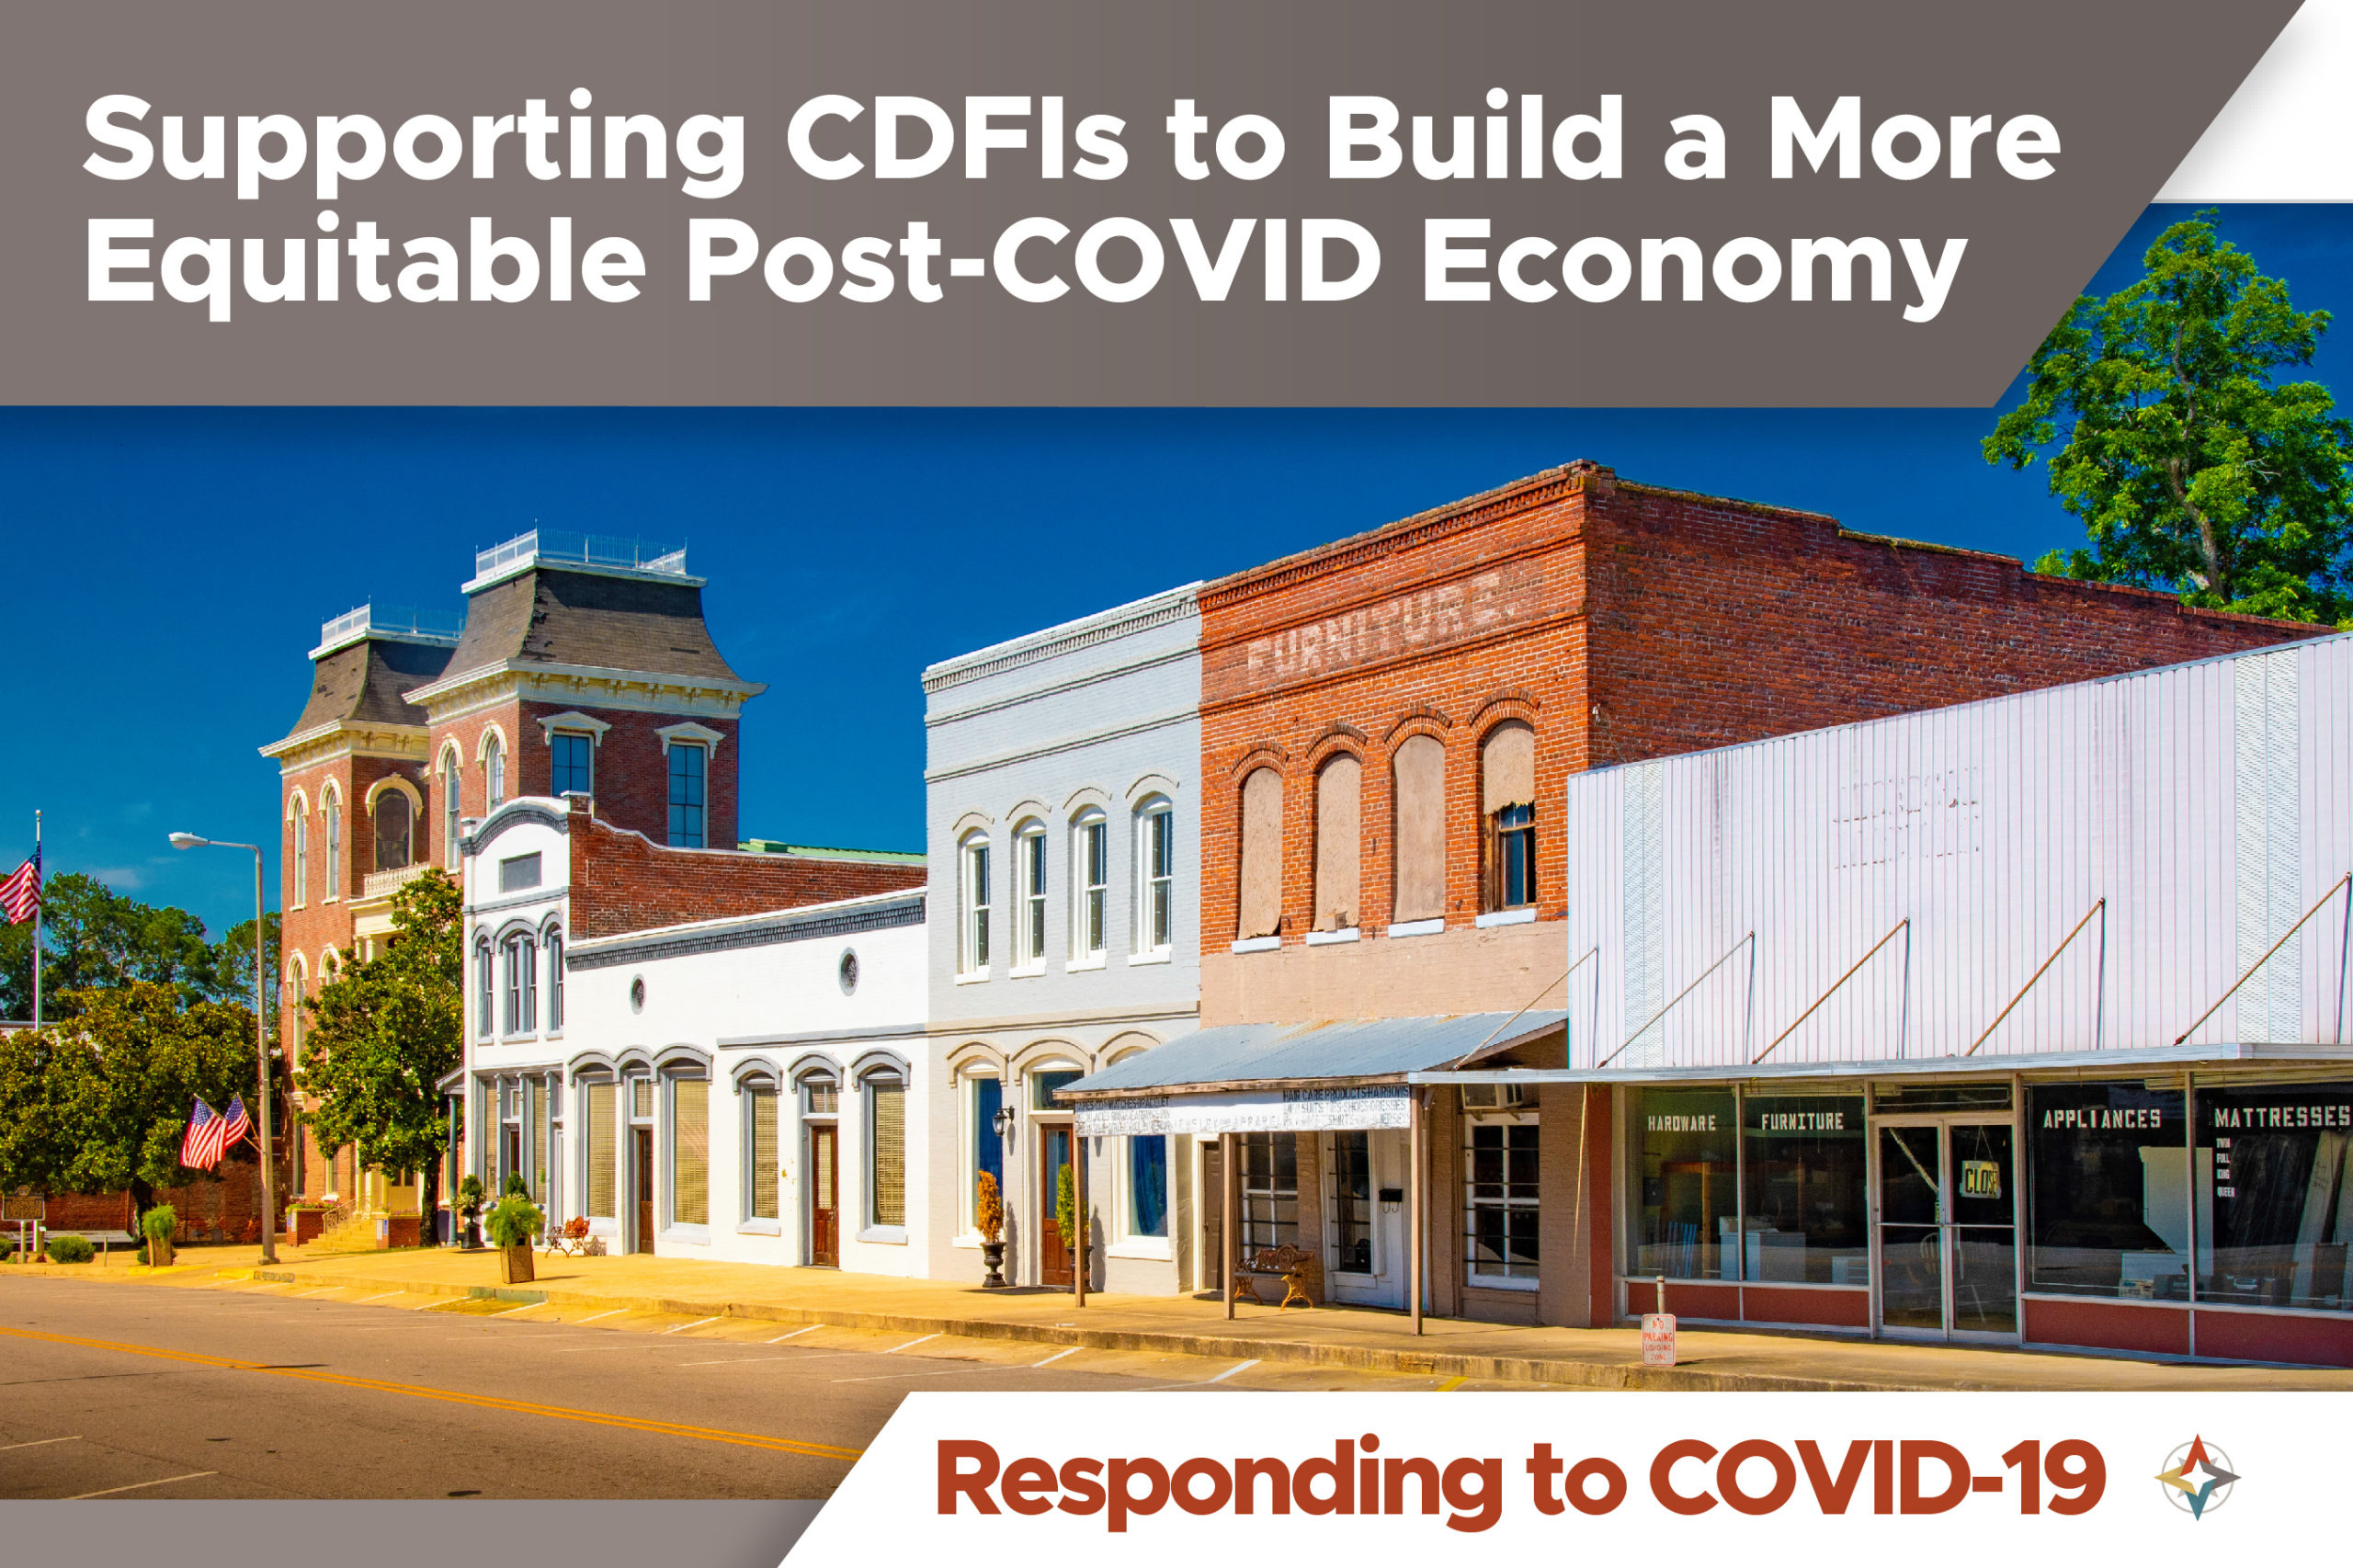 Supporting CDFIs to Build a More Equitable Post-COVID Economy